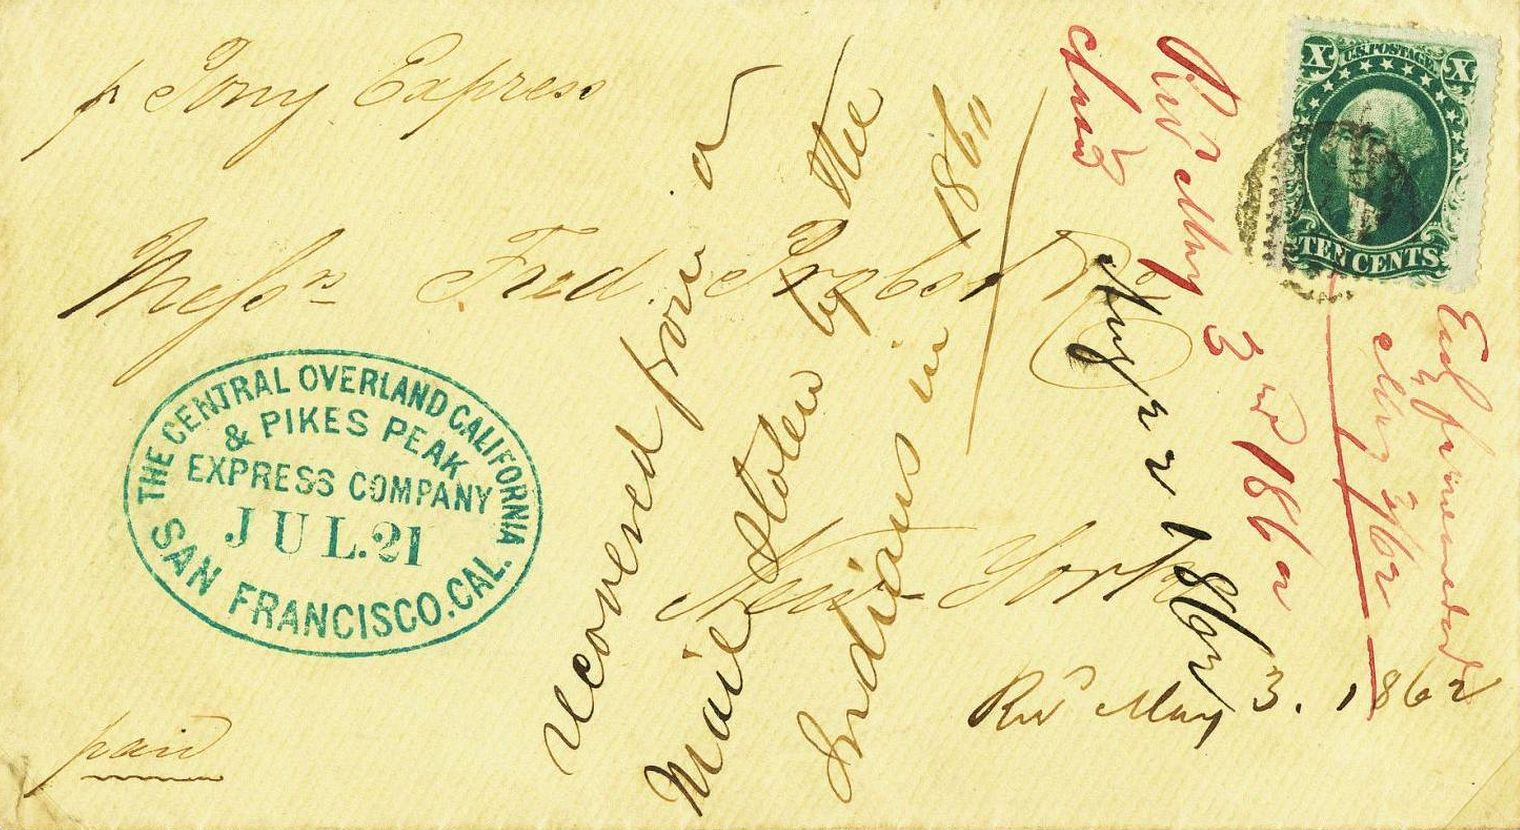 Mail Stolen from the Pony Express, which was recovered and finally reached New York on May 3, 1862.